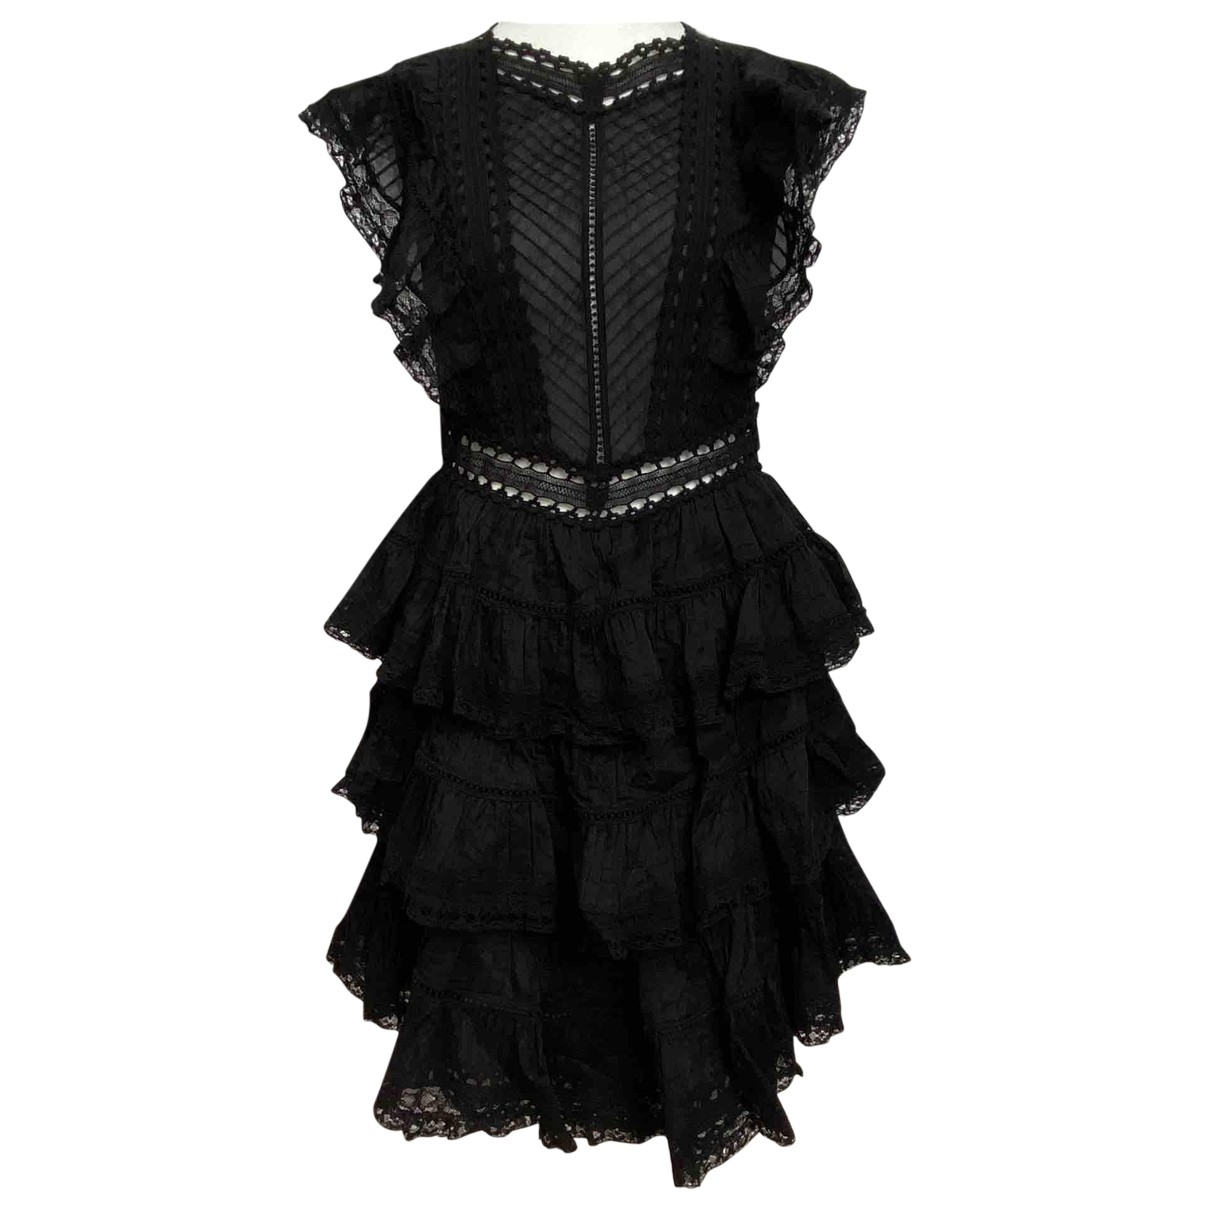 Zimmermann \N Black Cotton dress for Women 0 0-5